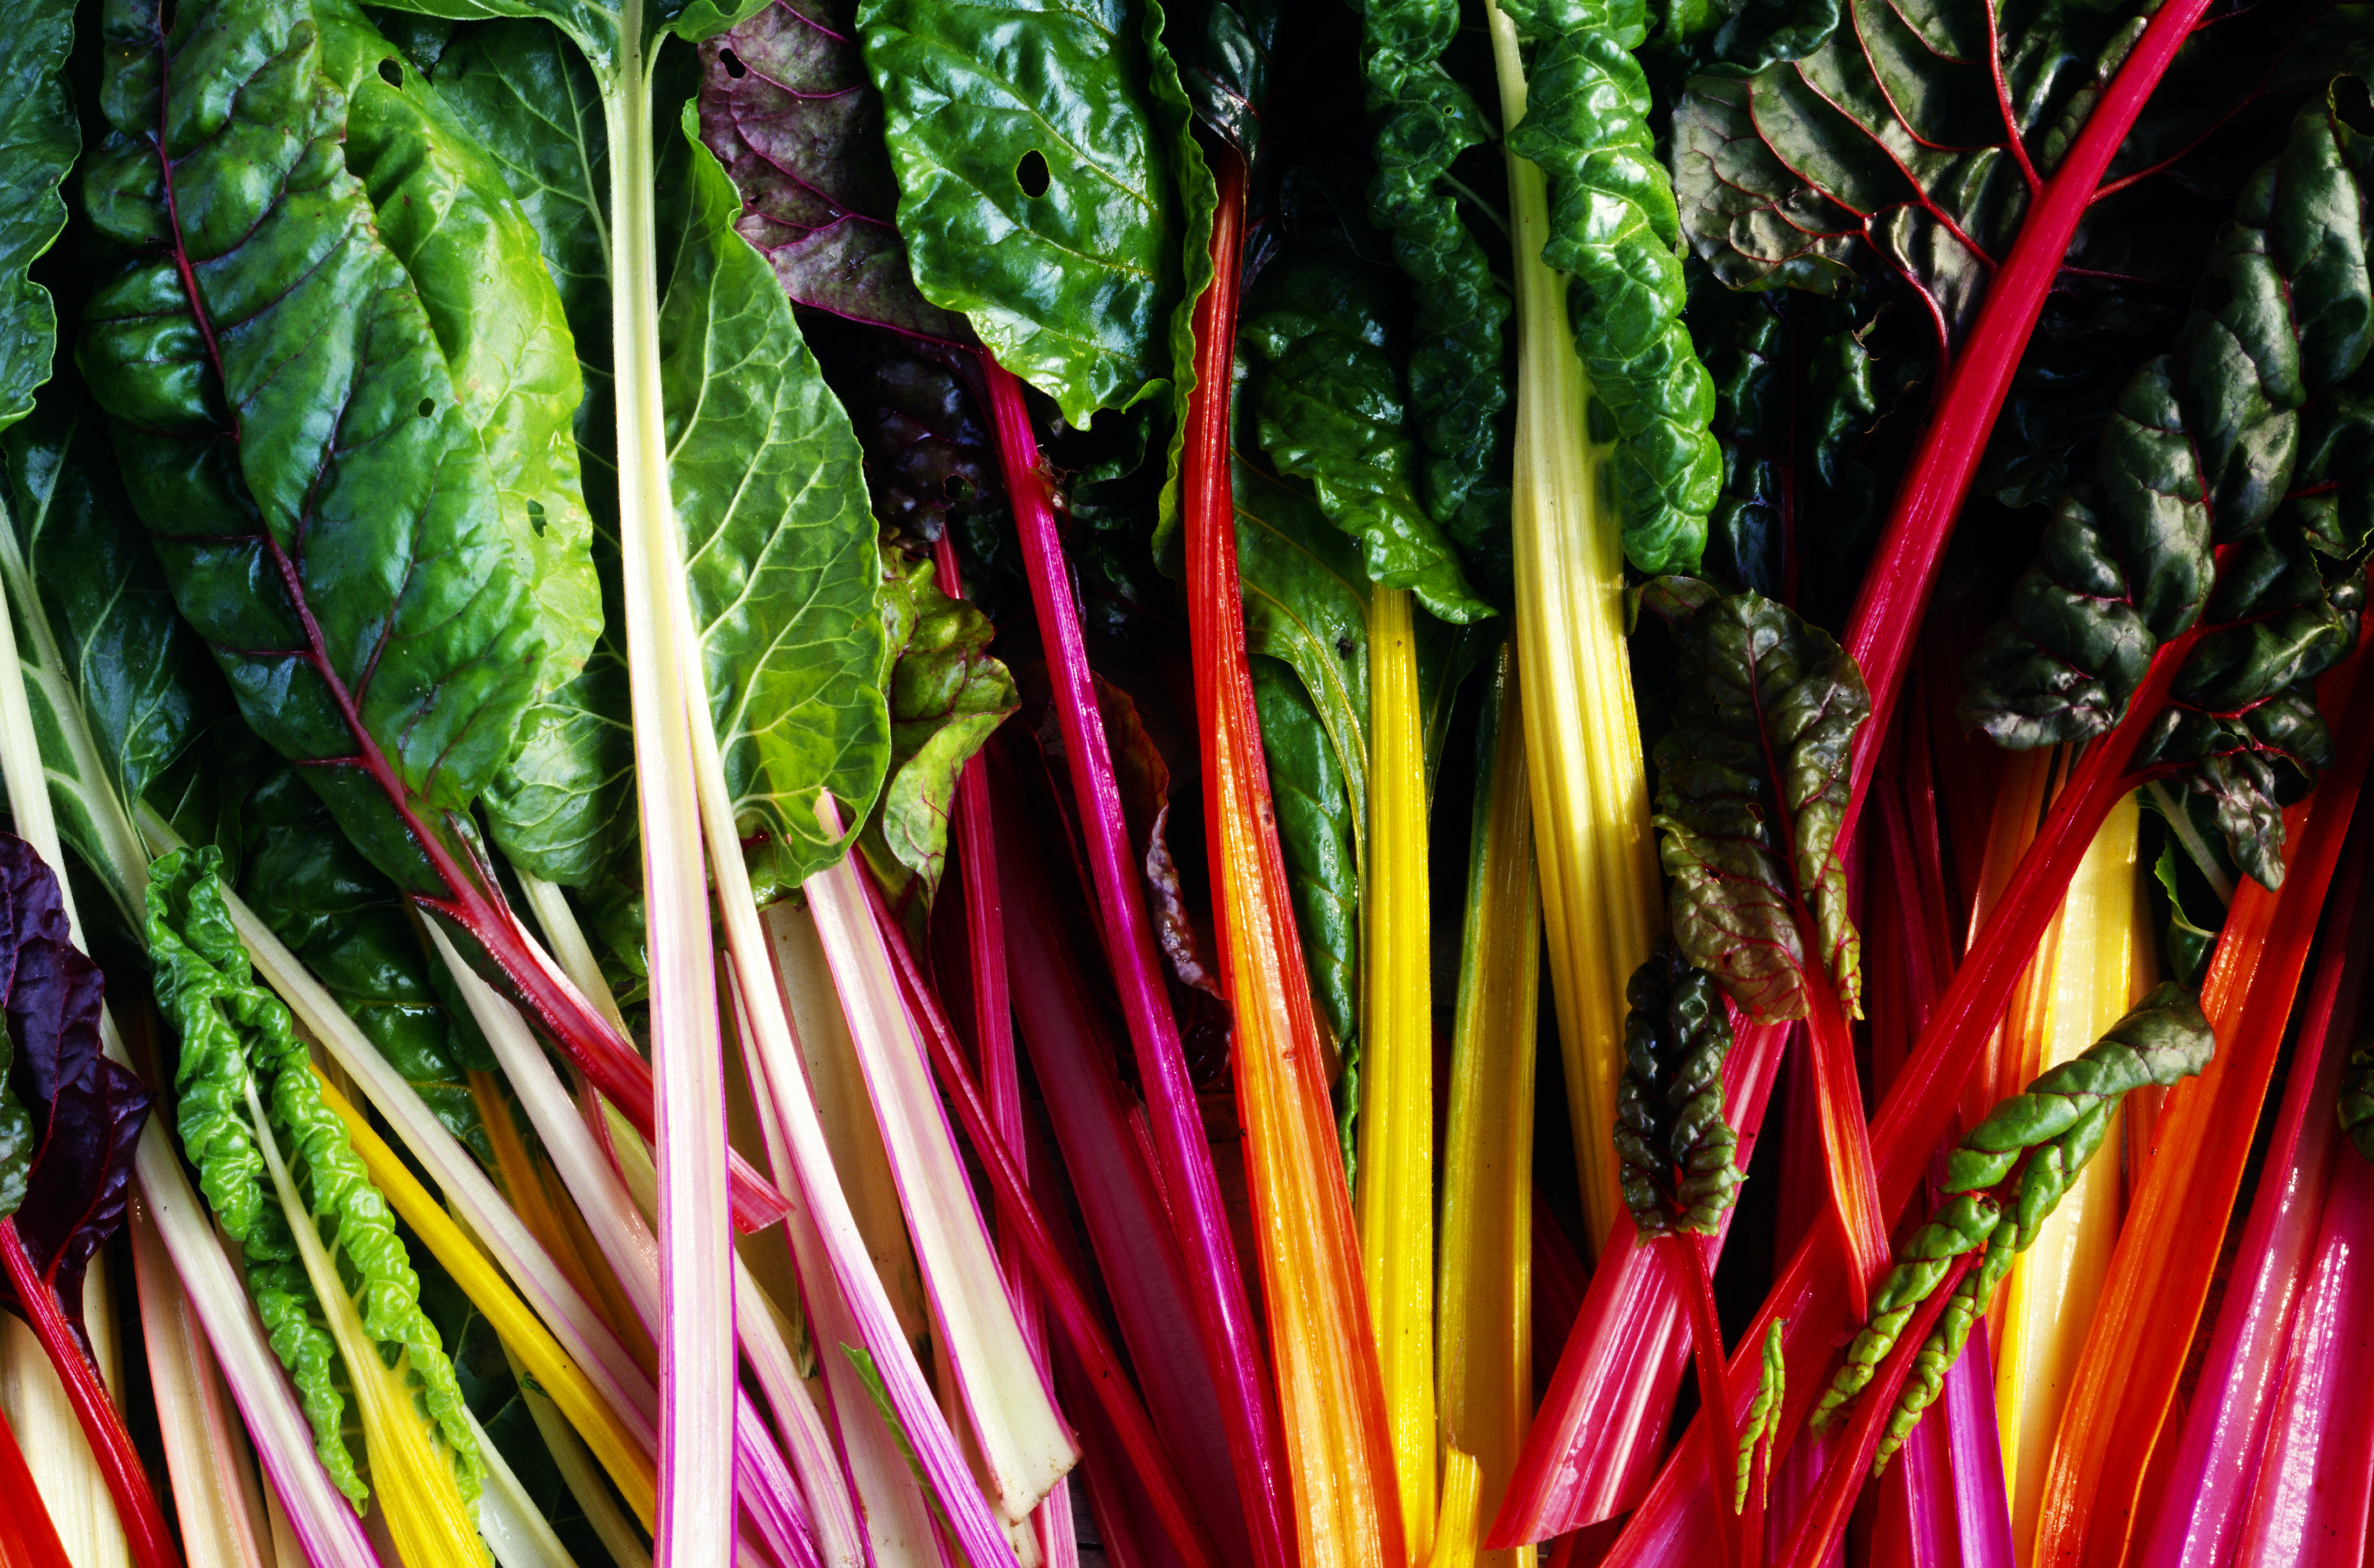 Swiss chard tolerates both cool temperatures and the heat, so you will see tasty varieties in September.